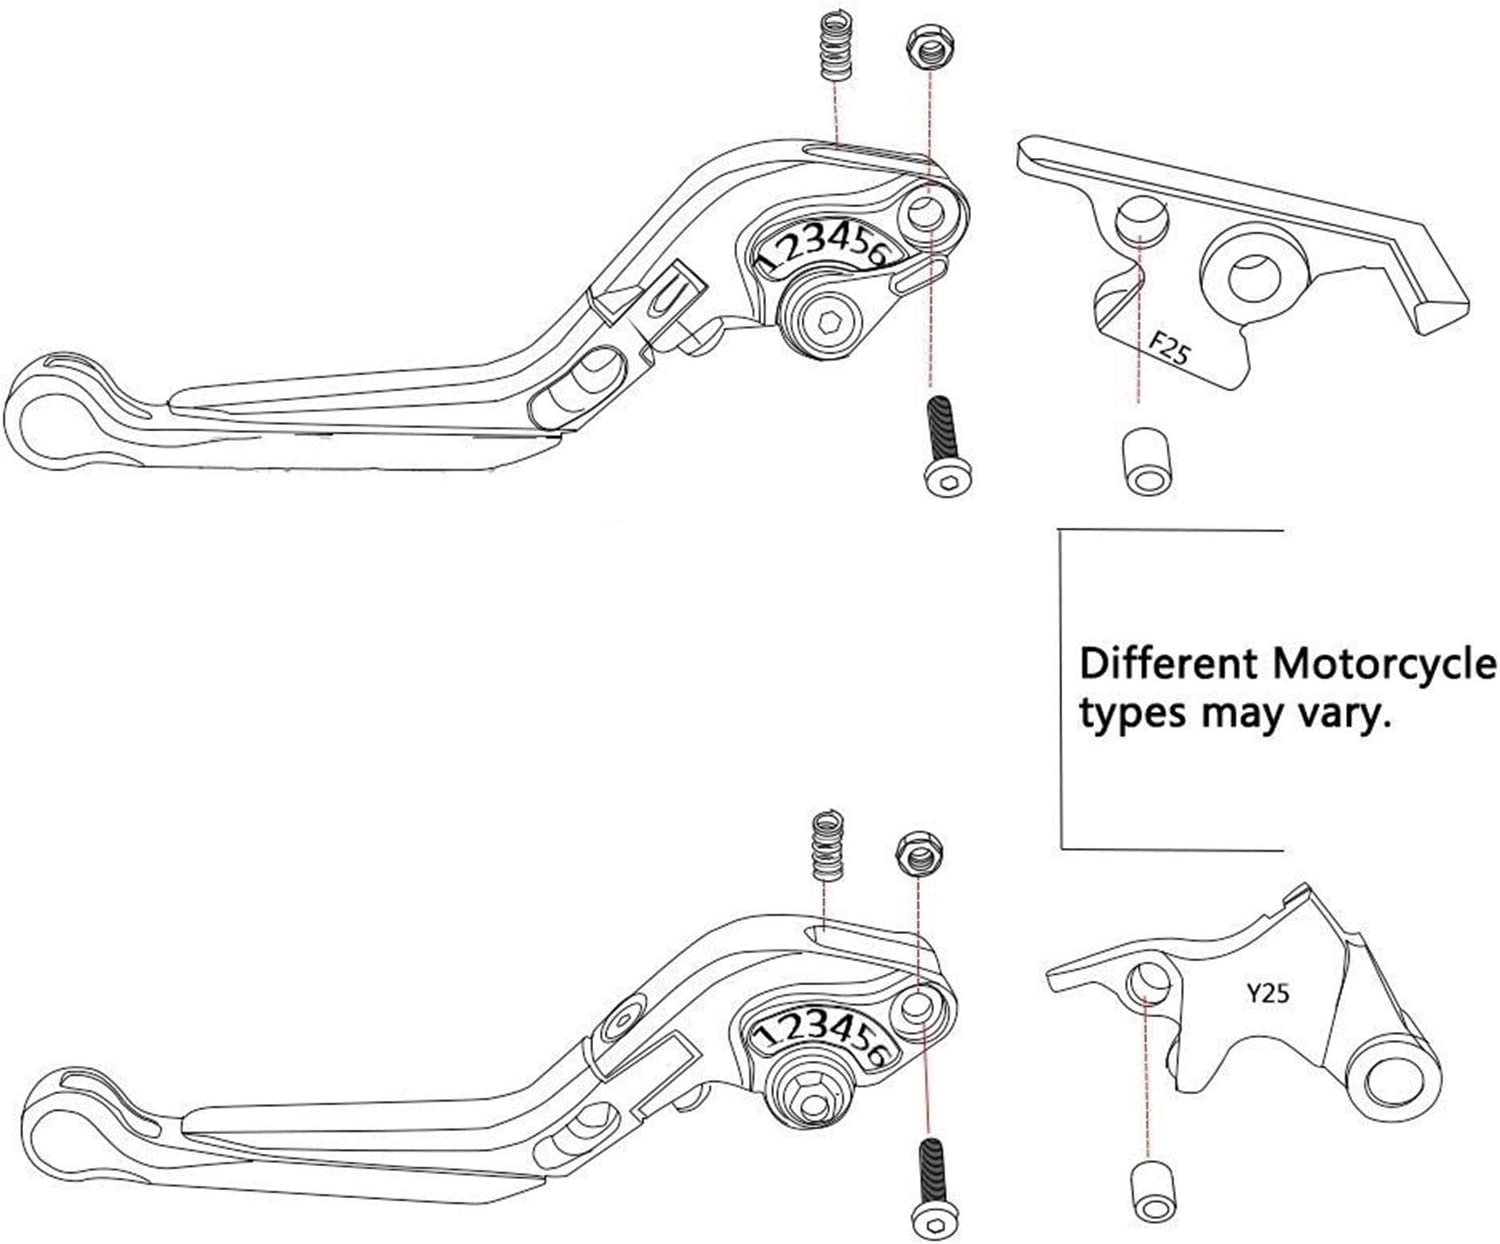 Motorcycle Adjustable Folding Extendable Brake Clutch Levers Accessories For H-ond-a CB1300//ABS CB 1300 ABS 2003-2010 Brake Levers Color : A set